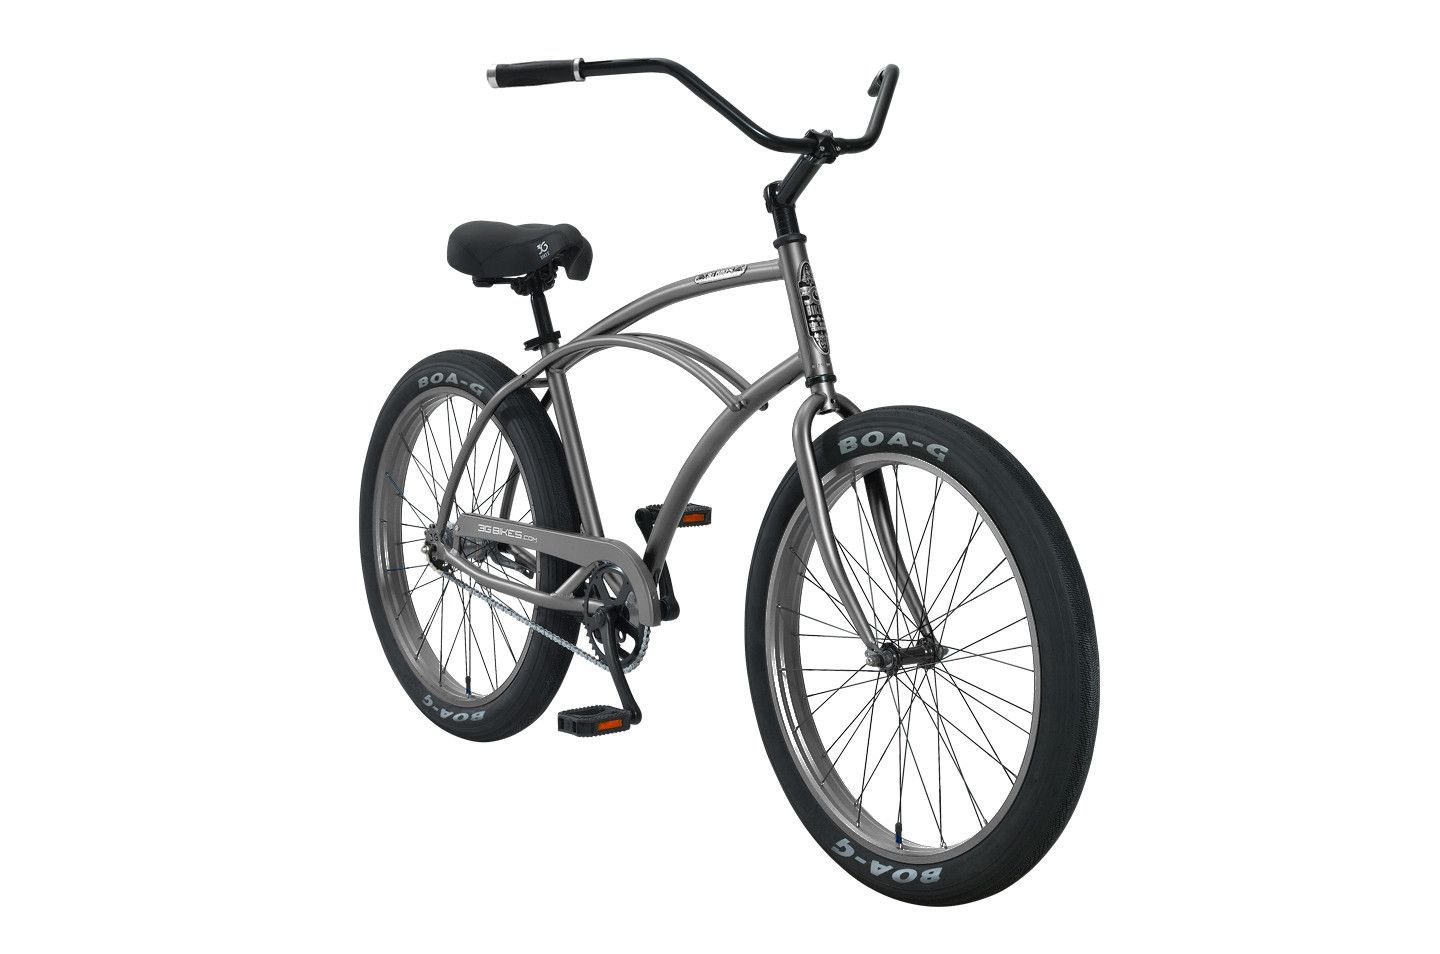 Newport Deluxe Single Speed Beach Cruiser Cruisers Bicycle